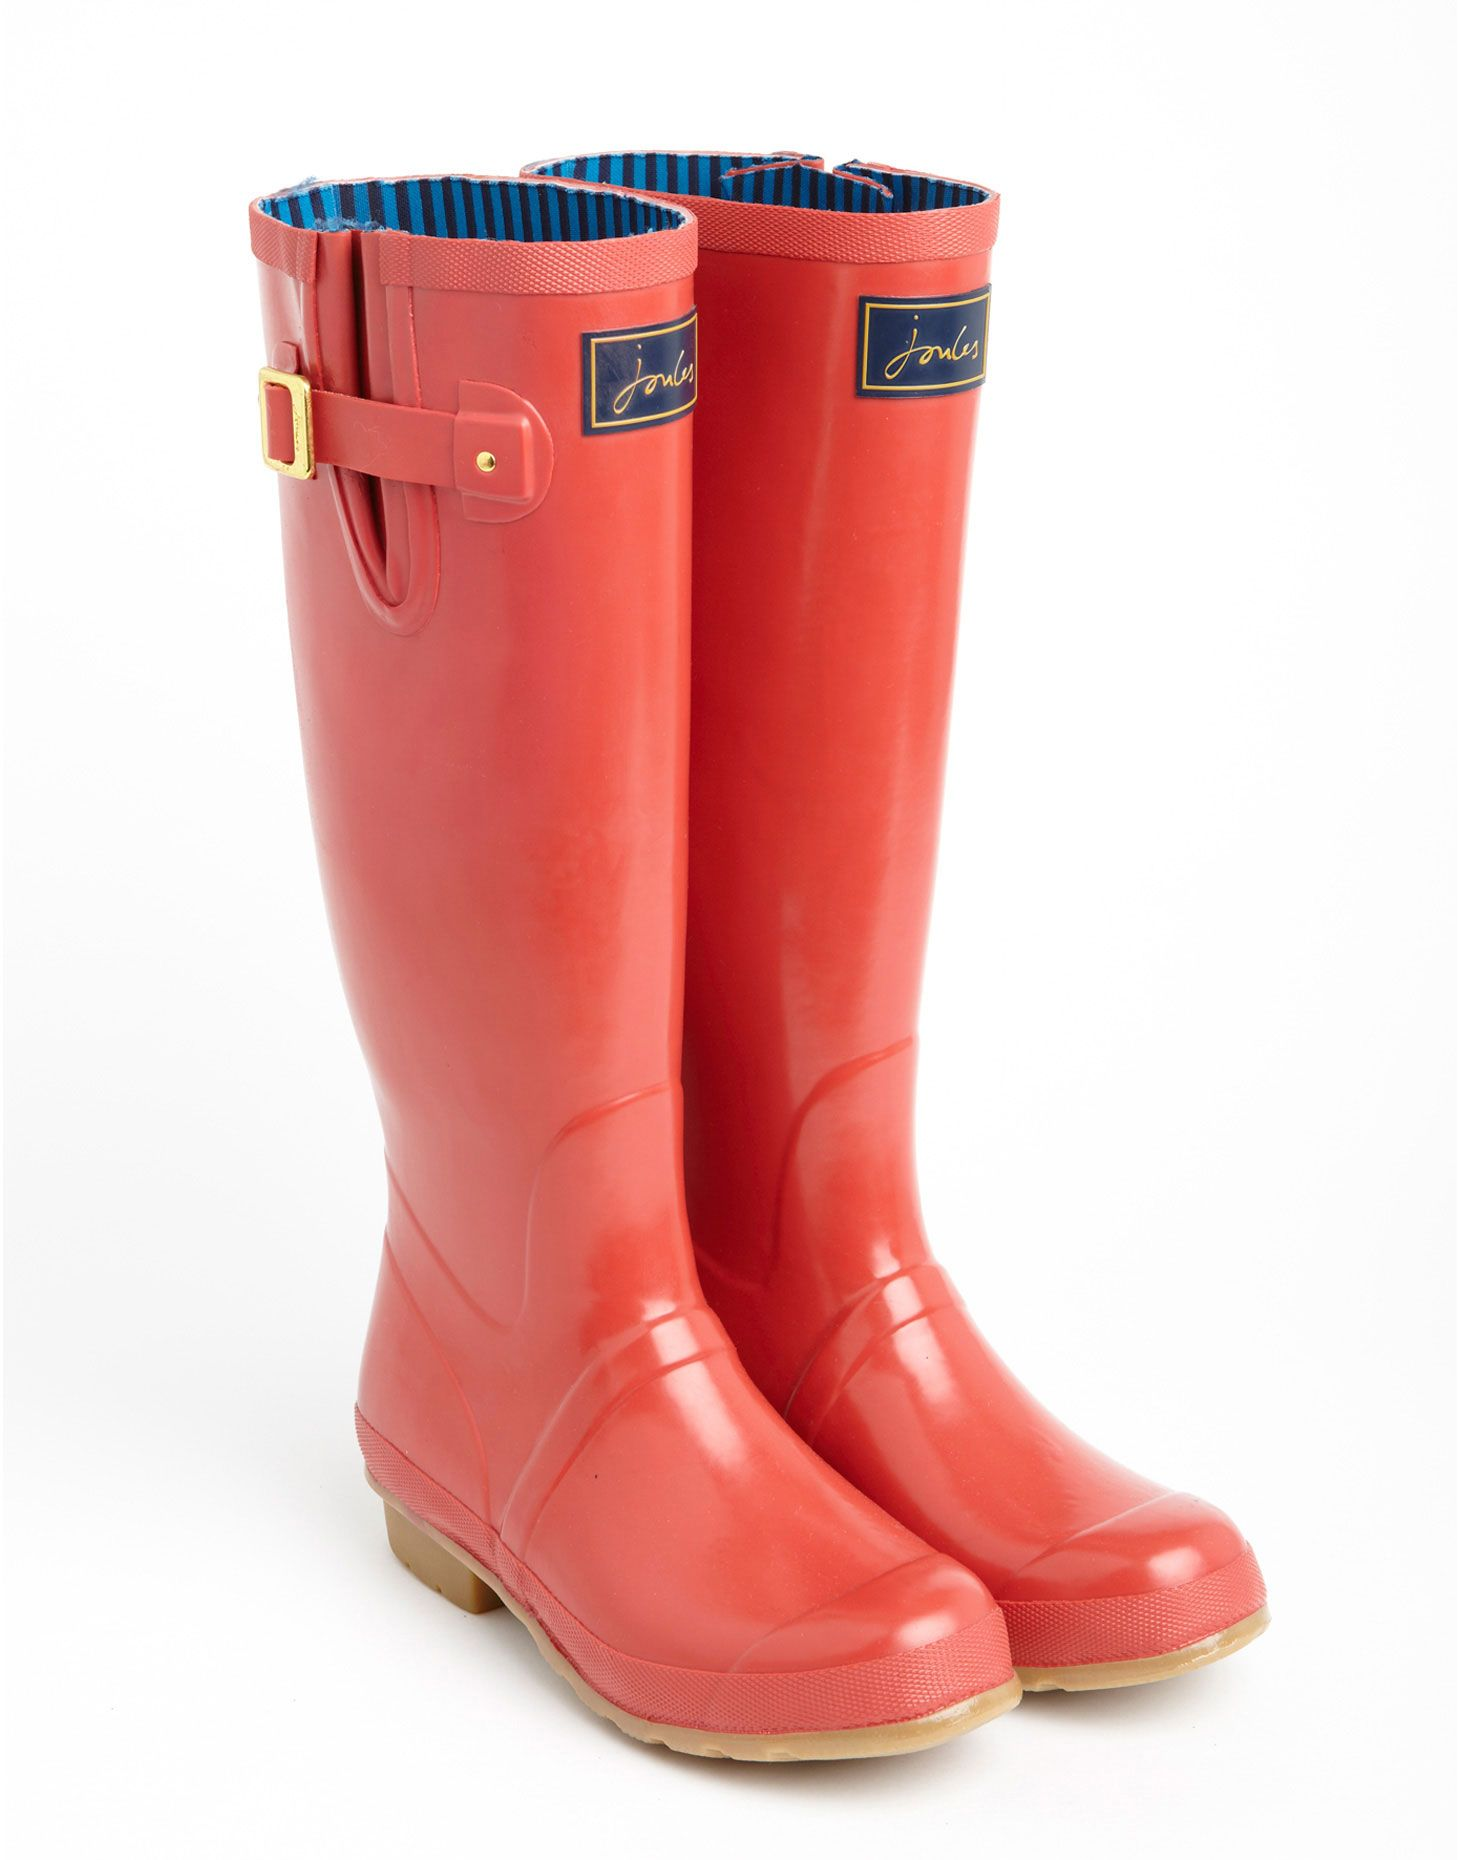 17 Best images about Rain boots on Pinterest | Ralph lauren, Cath ...